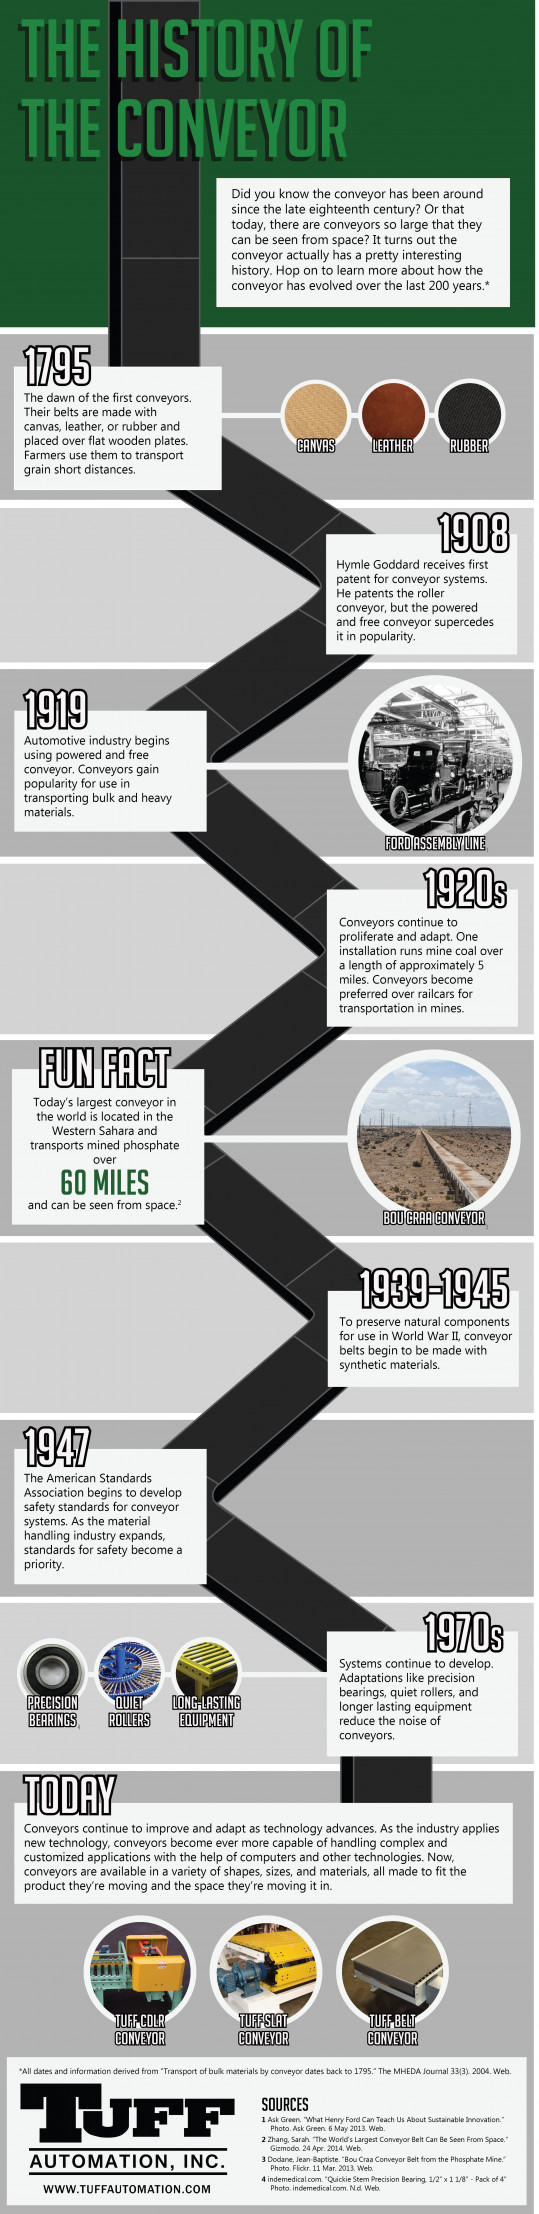 The History of the Conveyor Tuff Automation material handling